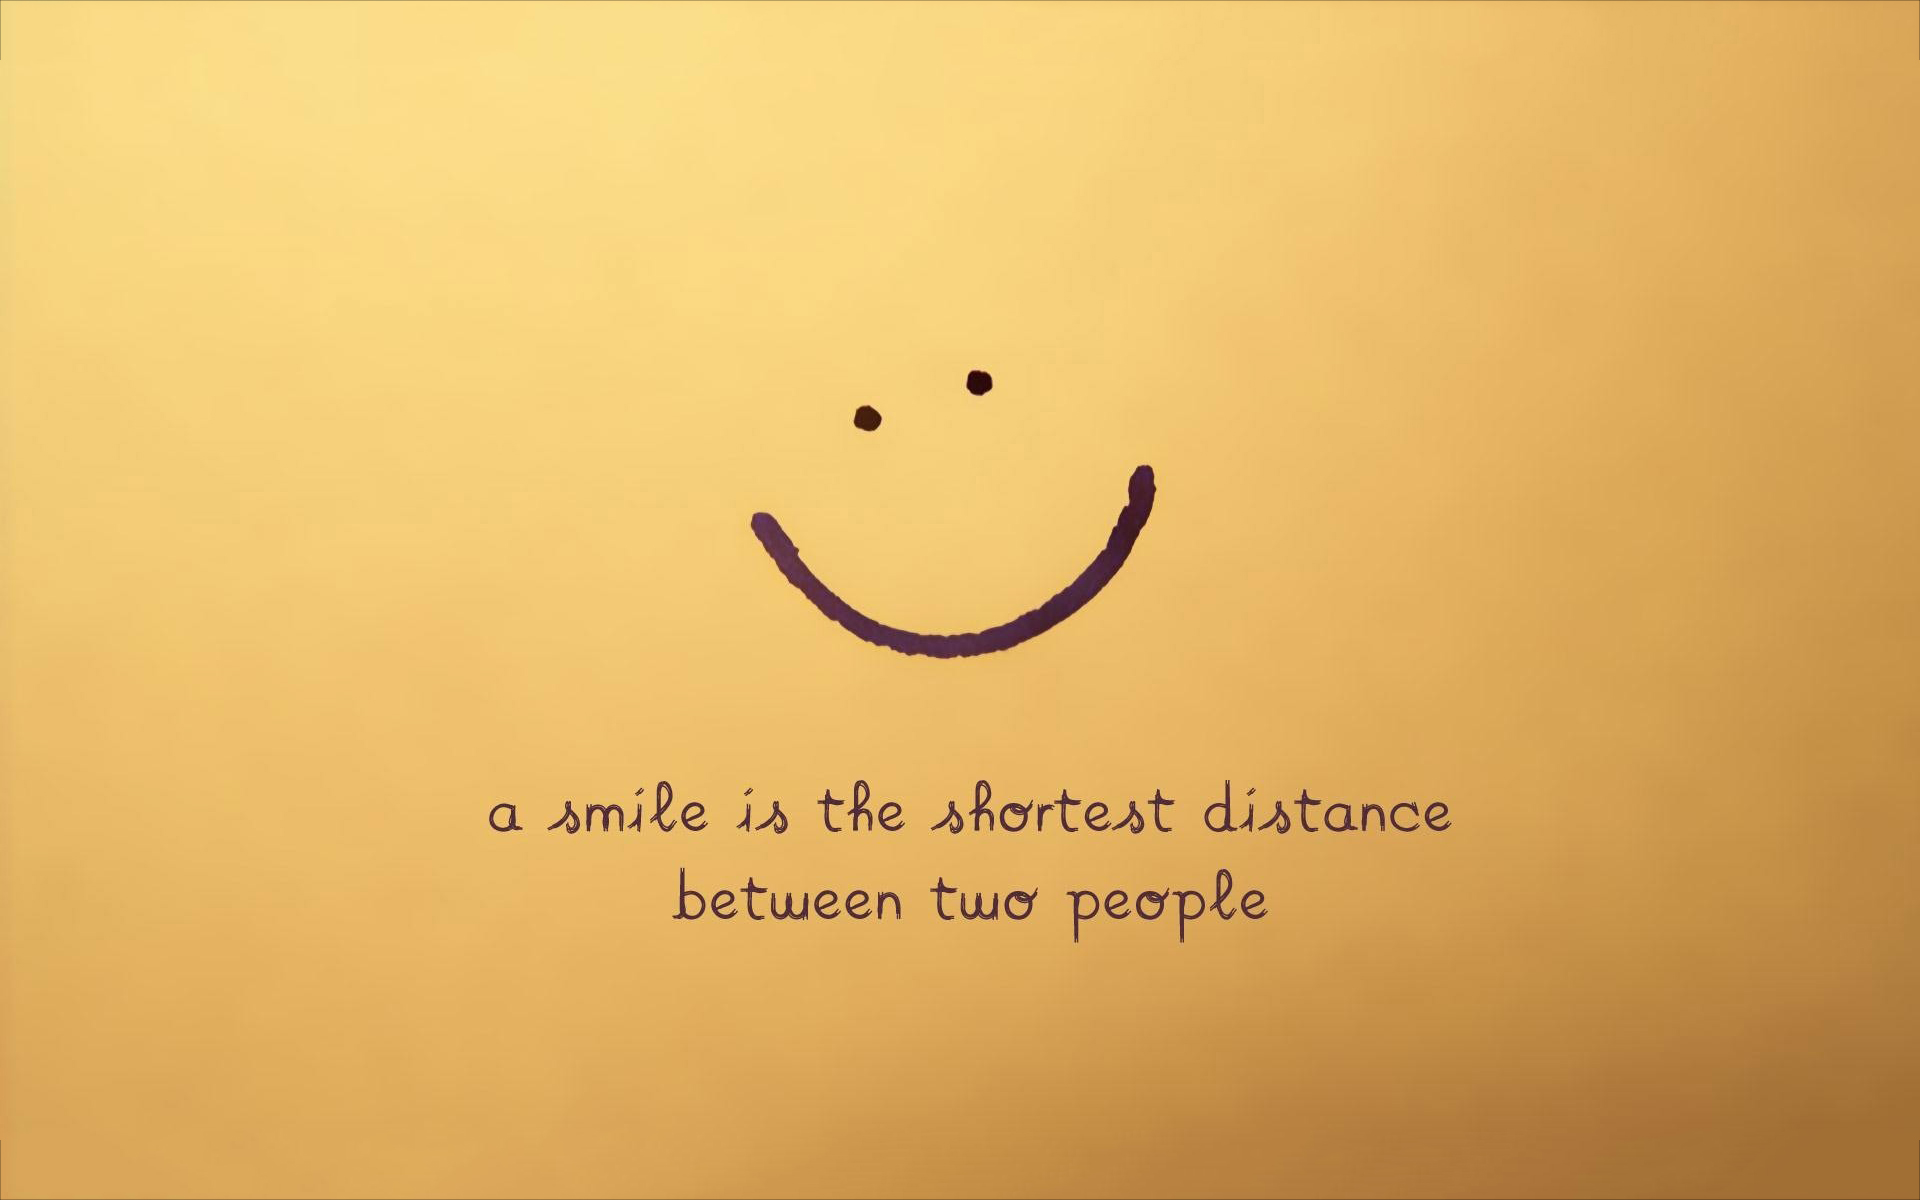 Smile is shortest distance